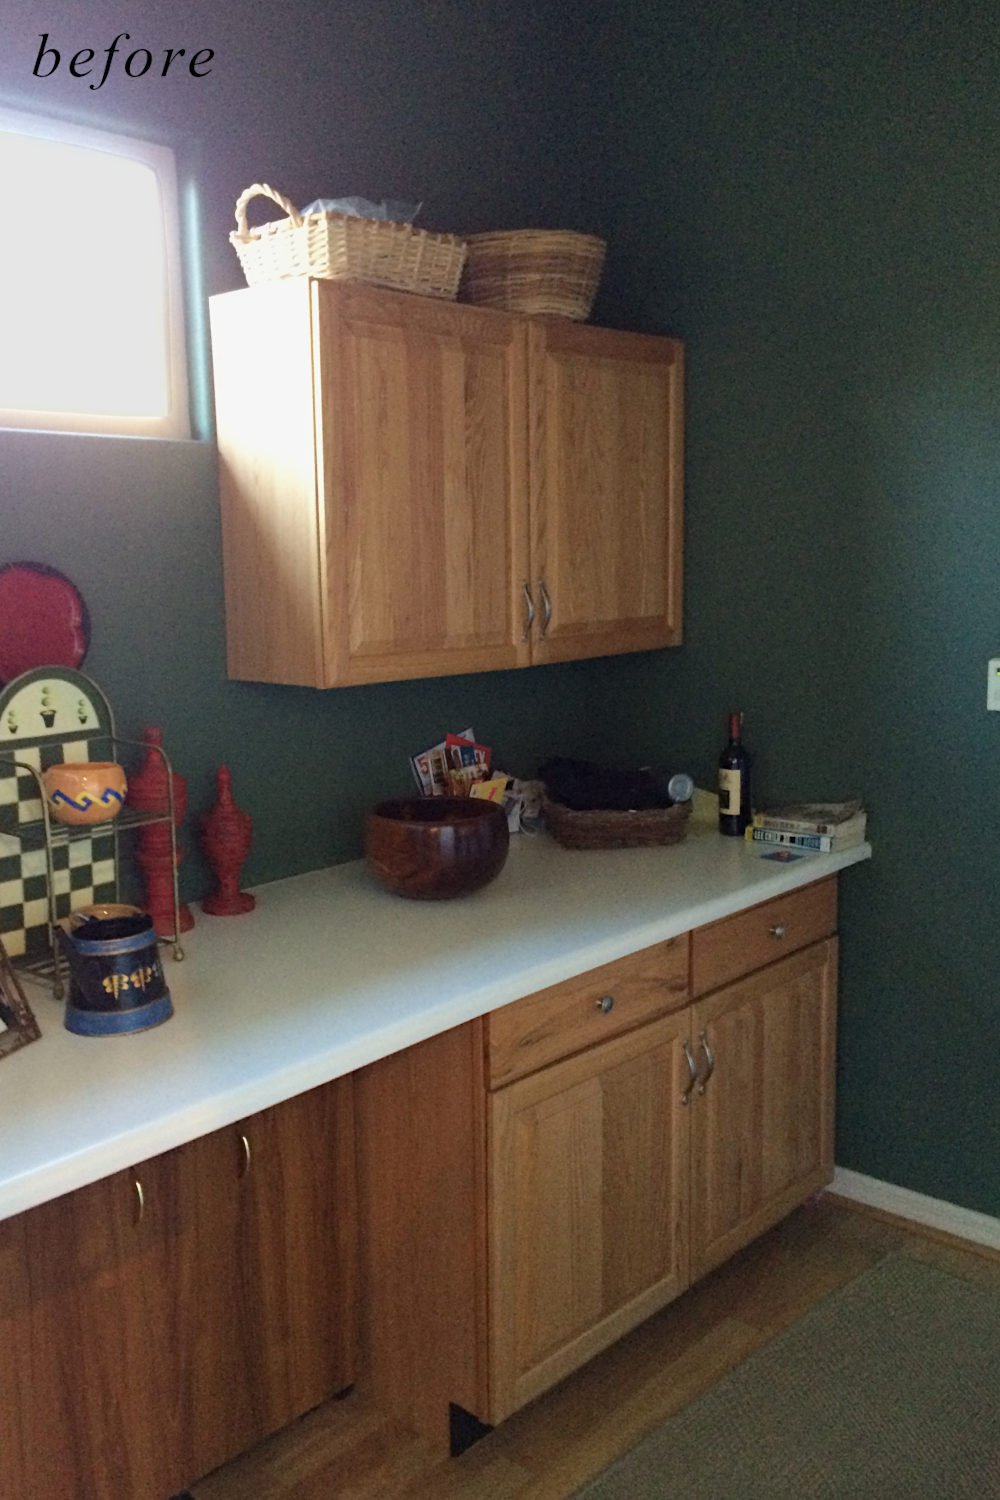 Before remodel image: old and dated laundry room with basic small cabinets.